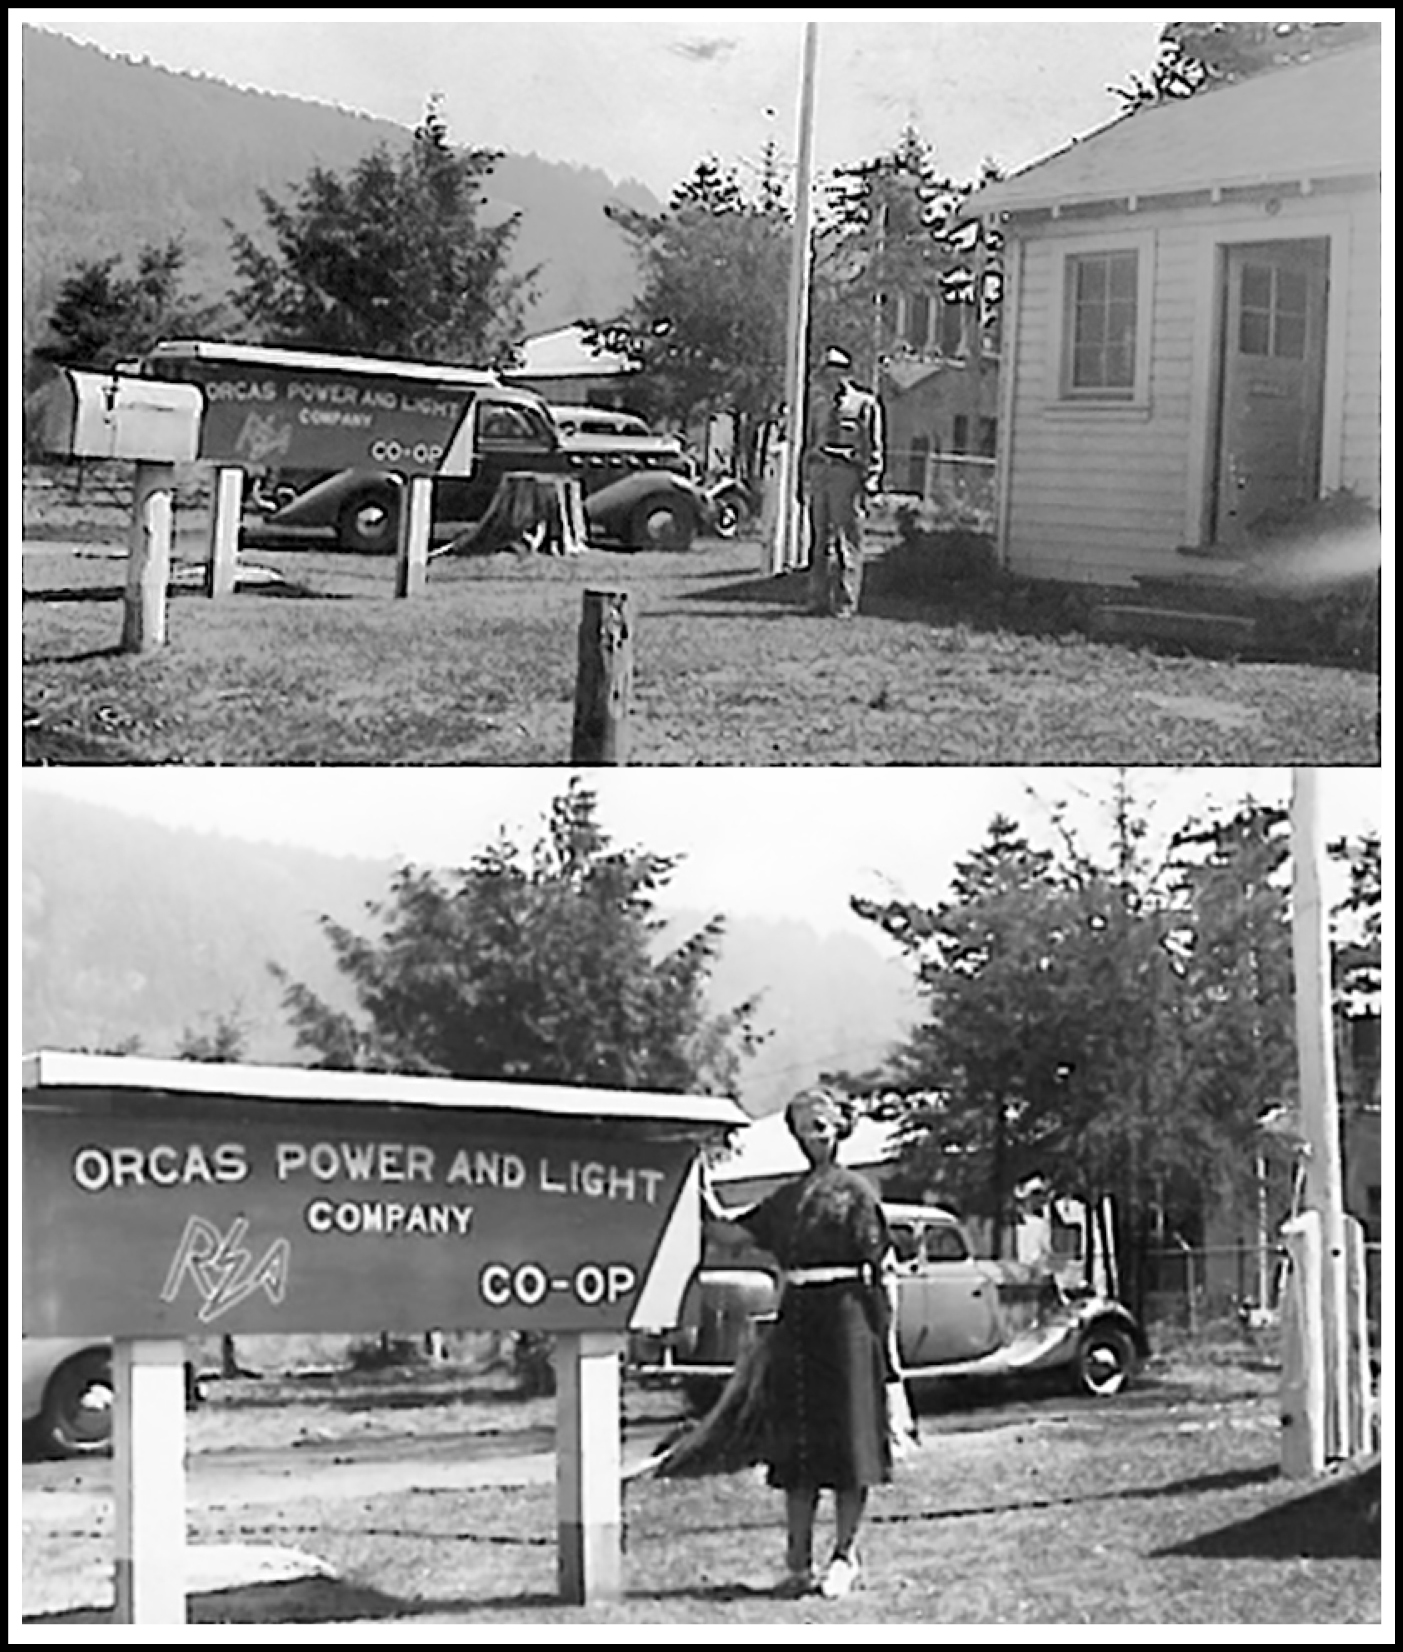 the original OPALCO headquarters in Eastsound